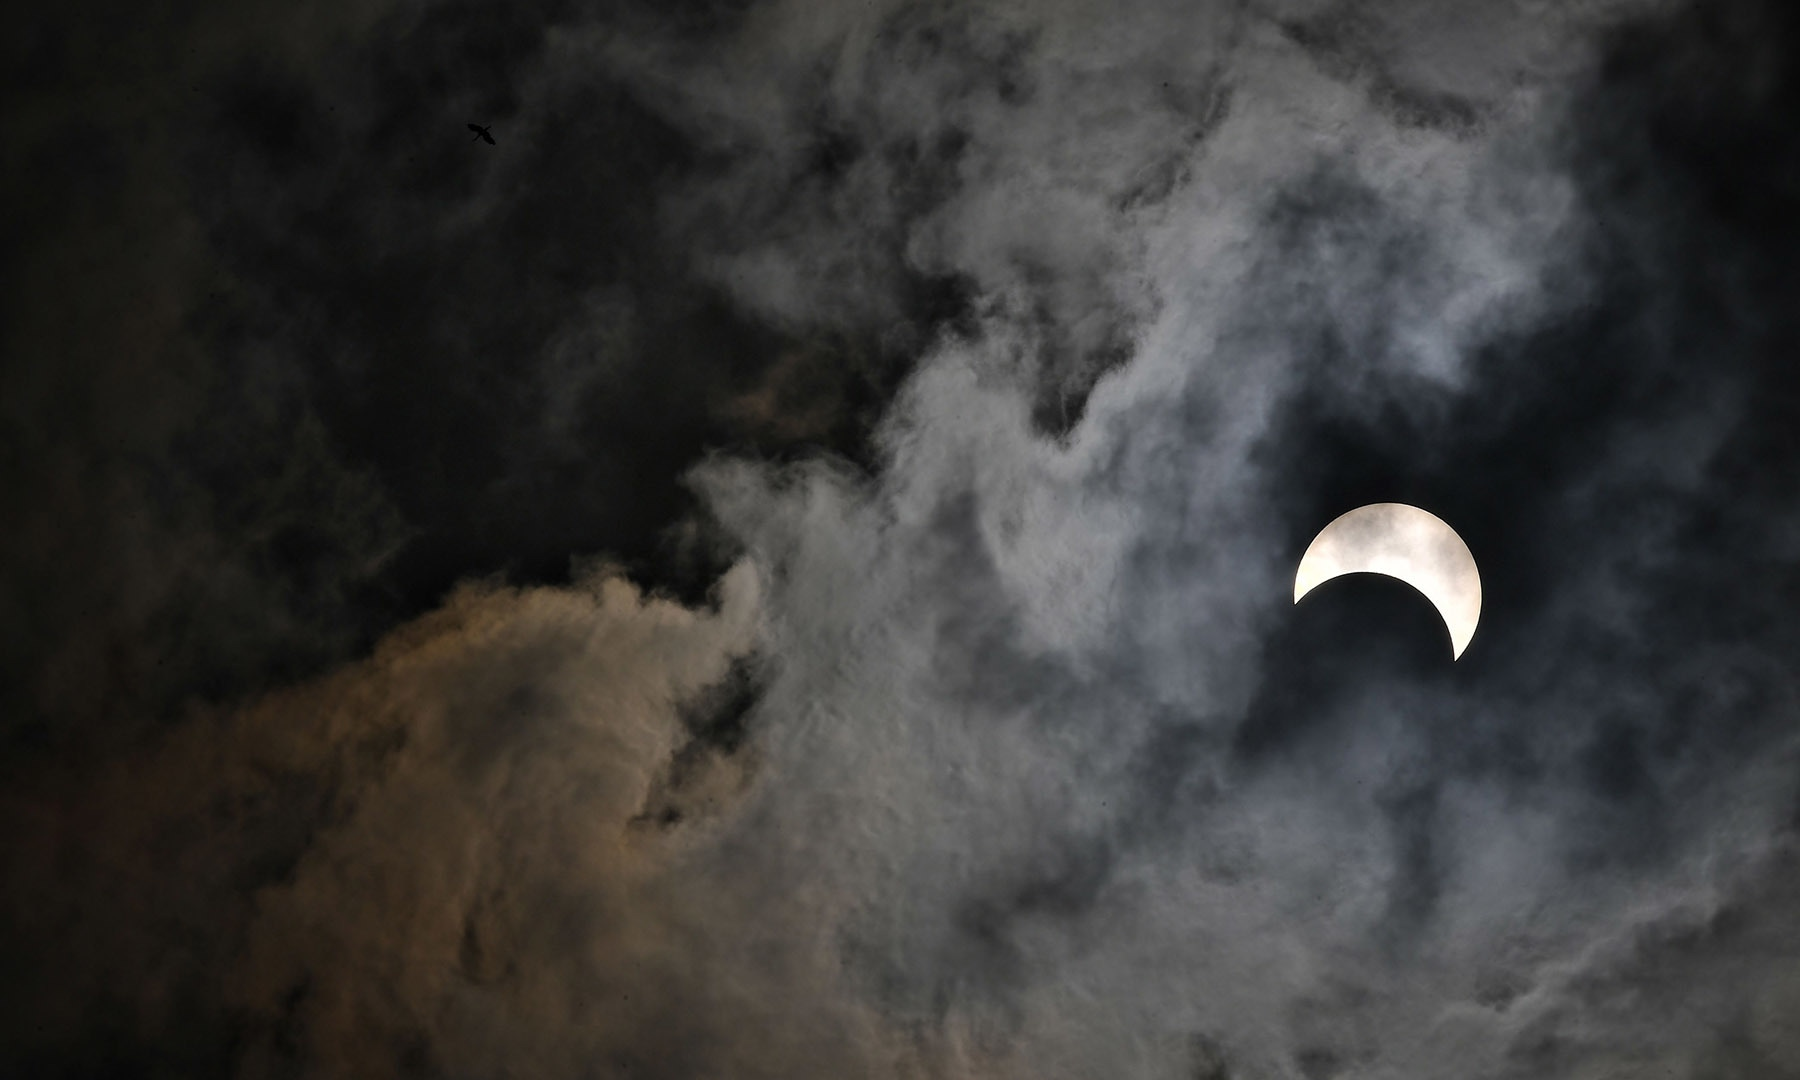 """The moon moves in front of the sun in a rare """"ring of fire"""" solar eclipse in Bangkok on December 26, 2019. (Photo by Lillian SUWANRUMPHA / AFP) — AFP or licensors"""